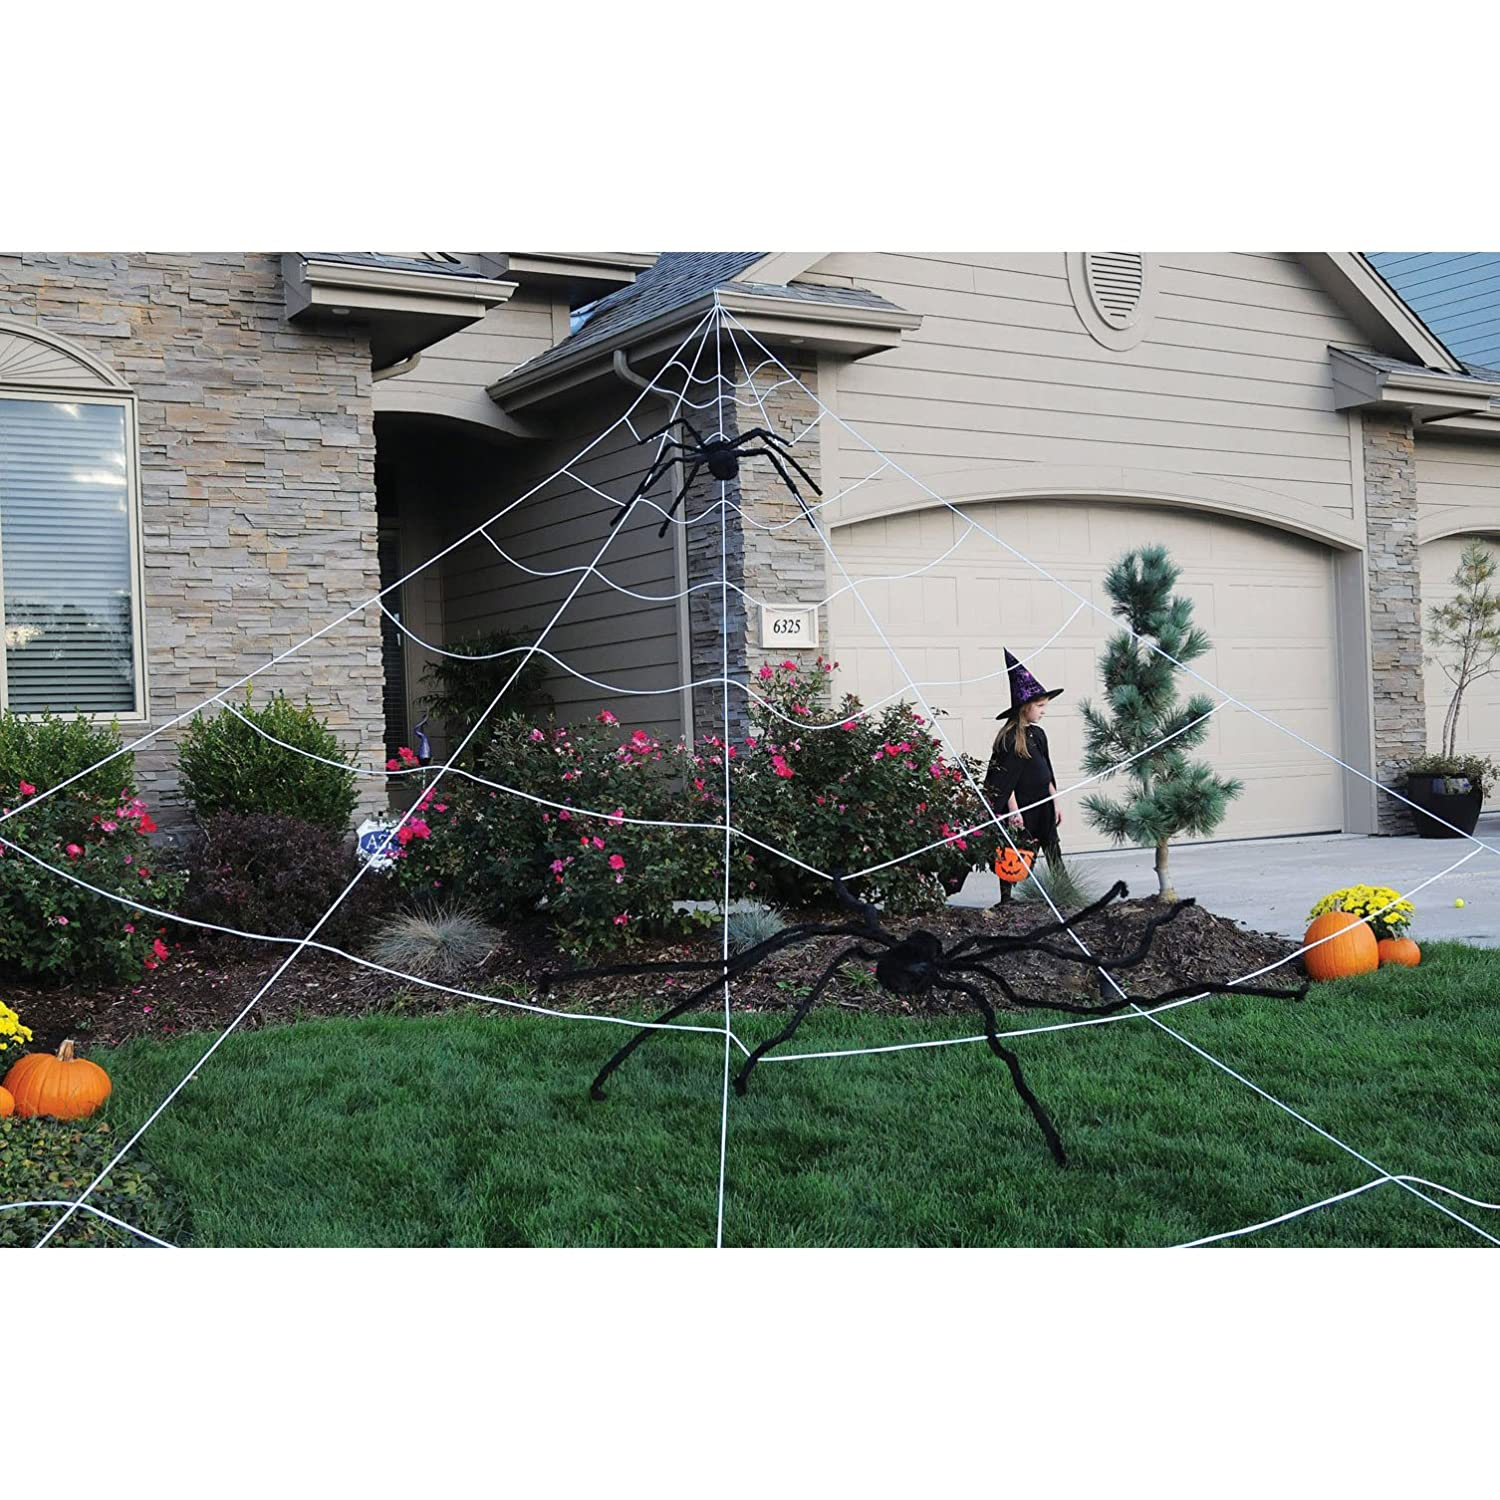 amazoncom mega spider web outdoor halloween decoration terrify your neighbors by funworld toys games - Giant Spider Halloween Decoration